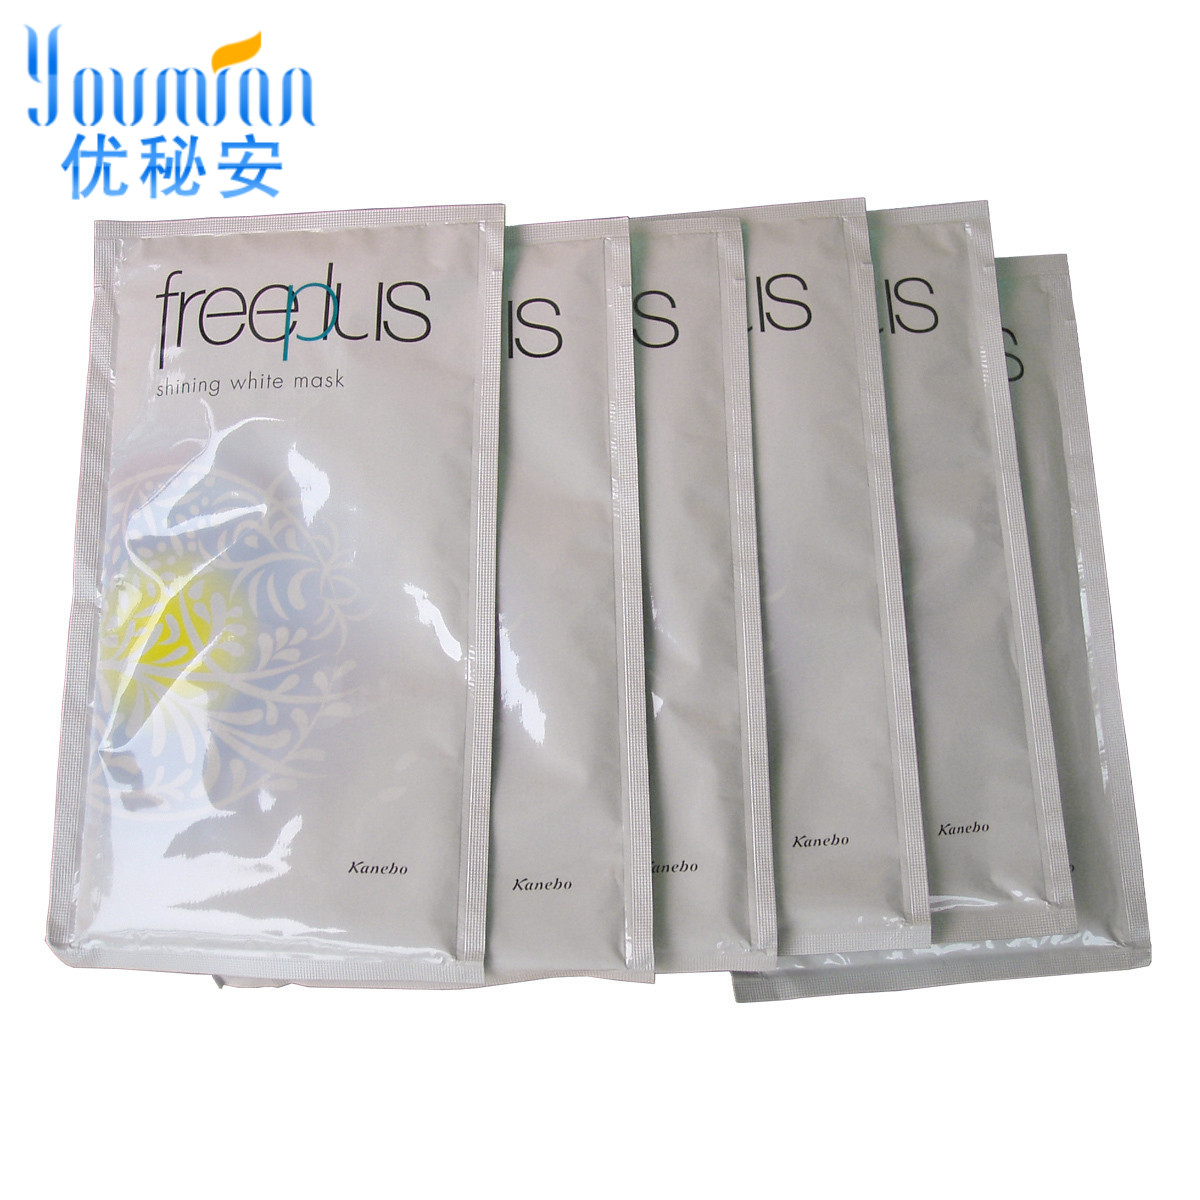 Freeplus/pure white mask condensate xiè丽è³ä¸27mlx6 japan brightening moisturizing mask